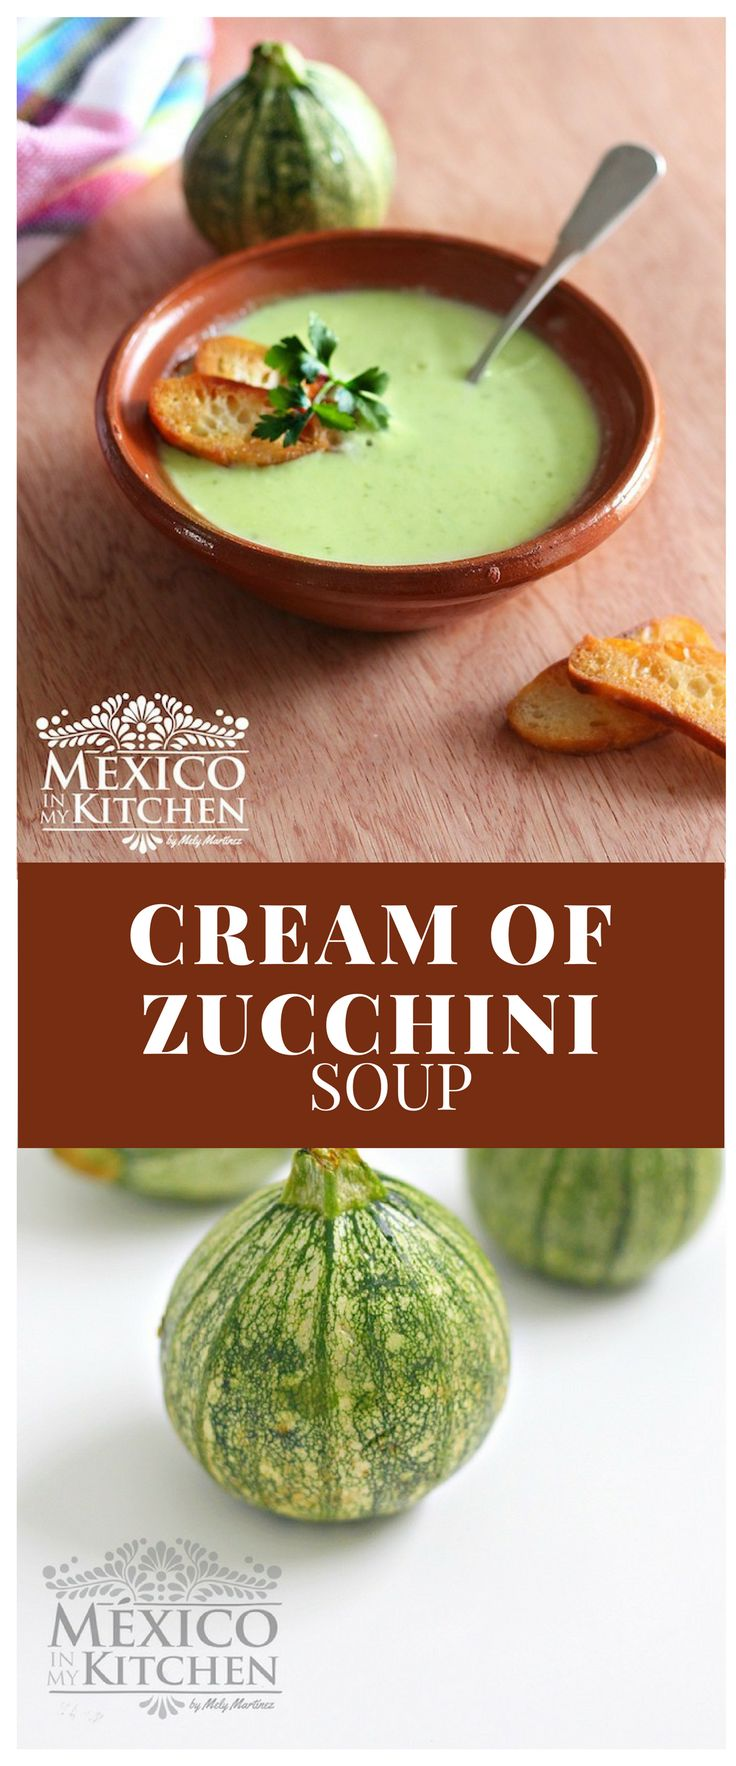 This recipe allows you to be creative in your cooking; you can add heavy cream if you want, corn kernels for garnish, or diced Mexican fresh cheese. #recipe #food #mexican #soups